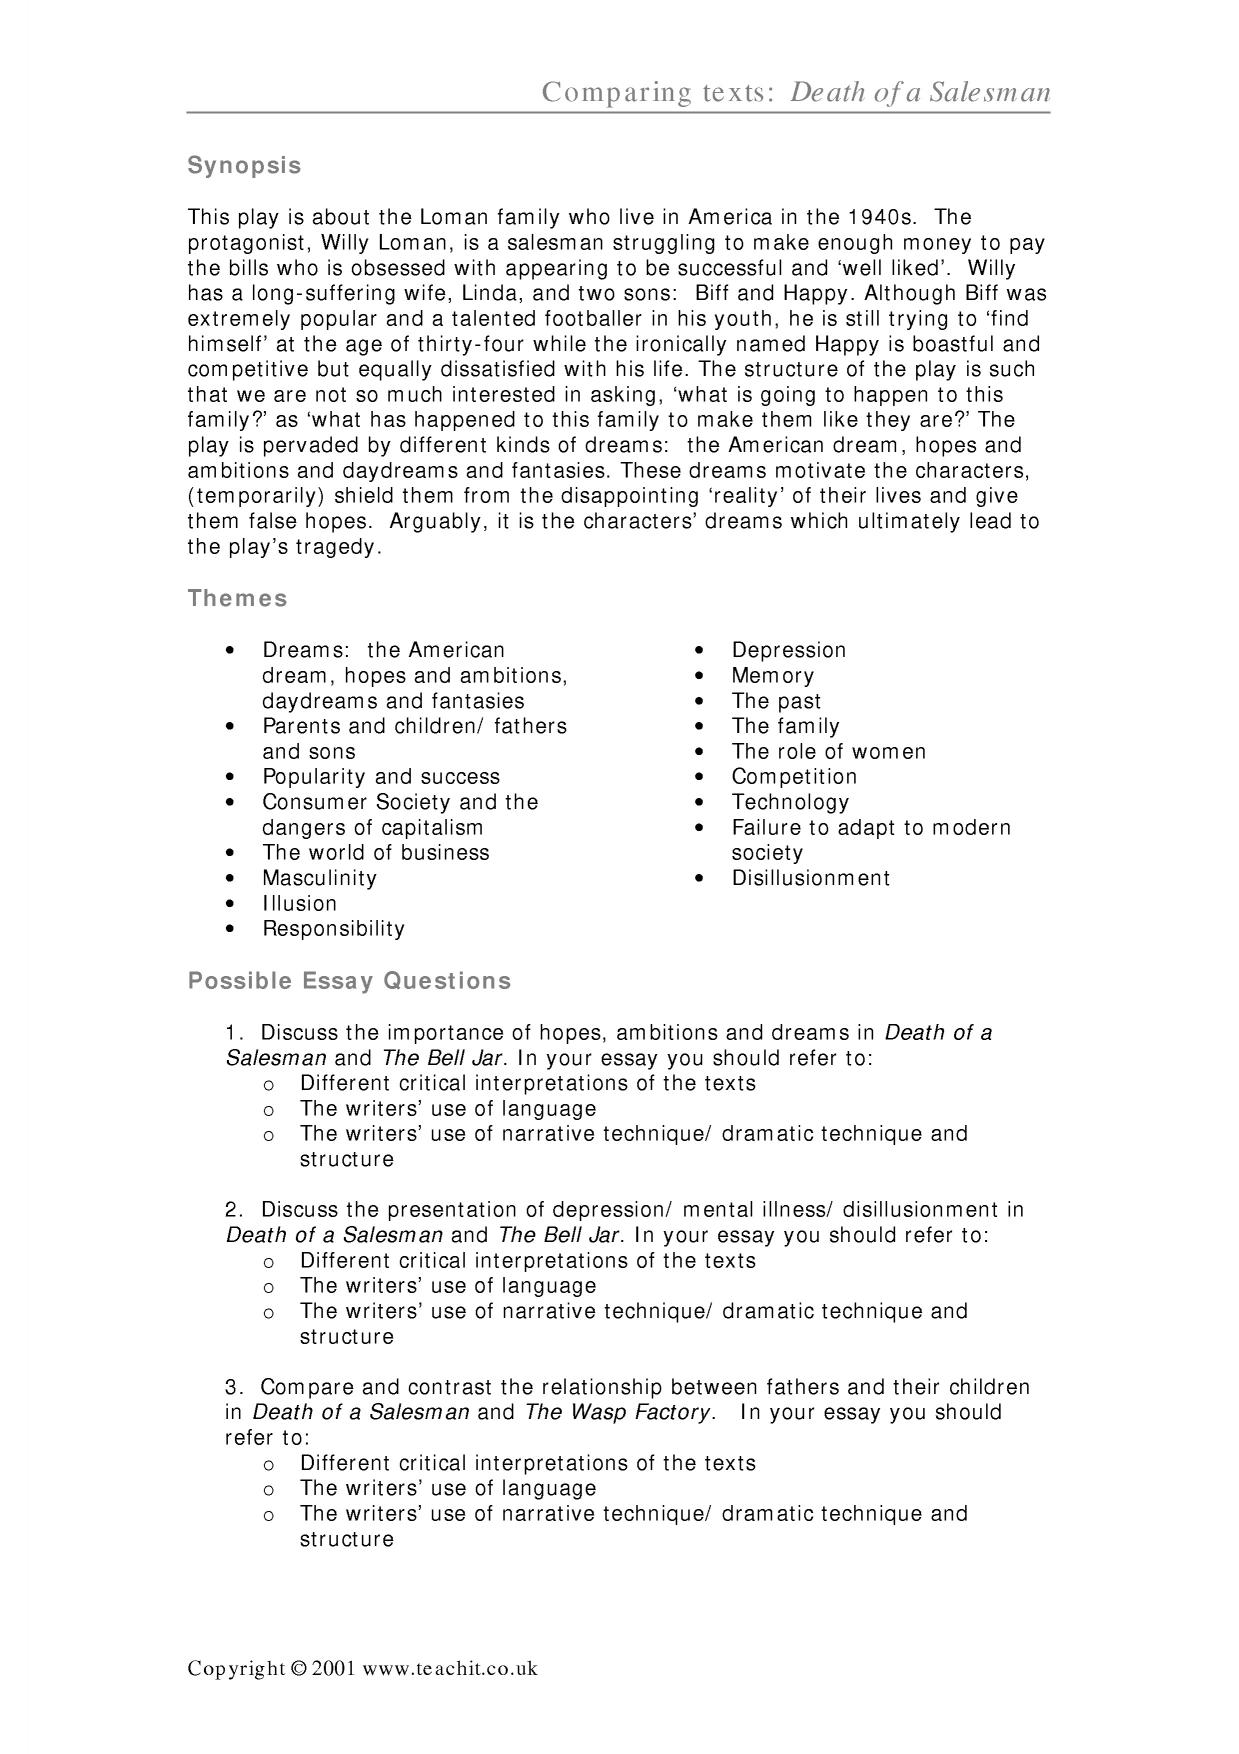 the role money plays in society essay Price mechanism plays a vital role in capitalism production, distribution, and consumption are influenced to a great extent by prices, and prices are measured in money even a socialist economy, where the price system does not play so important a role as under capitalism, cannot do without money.